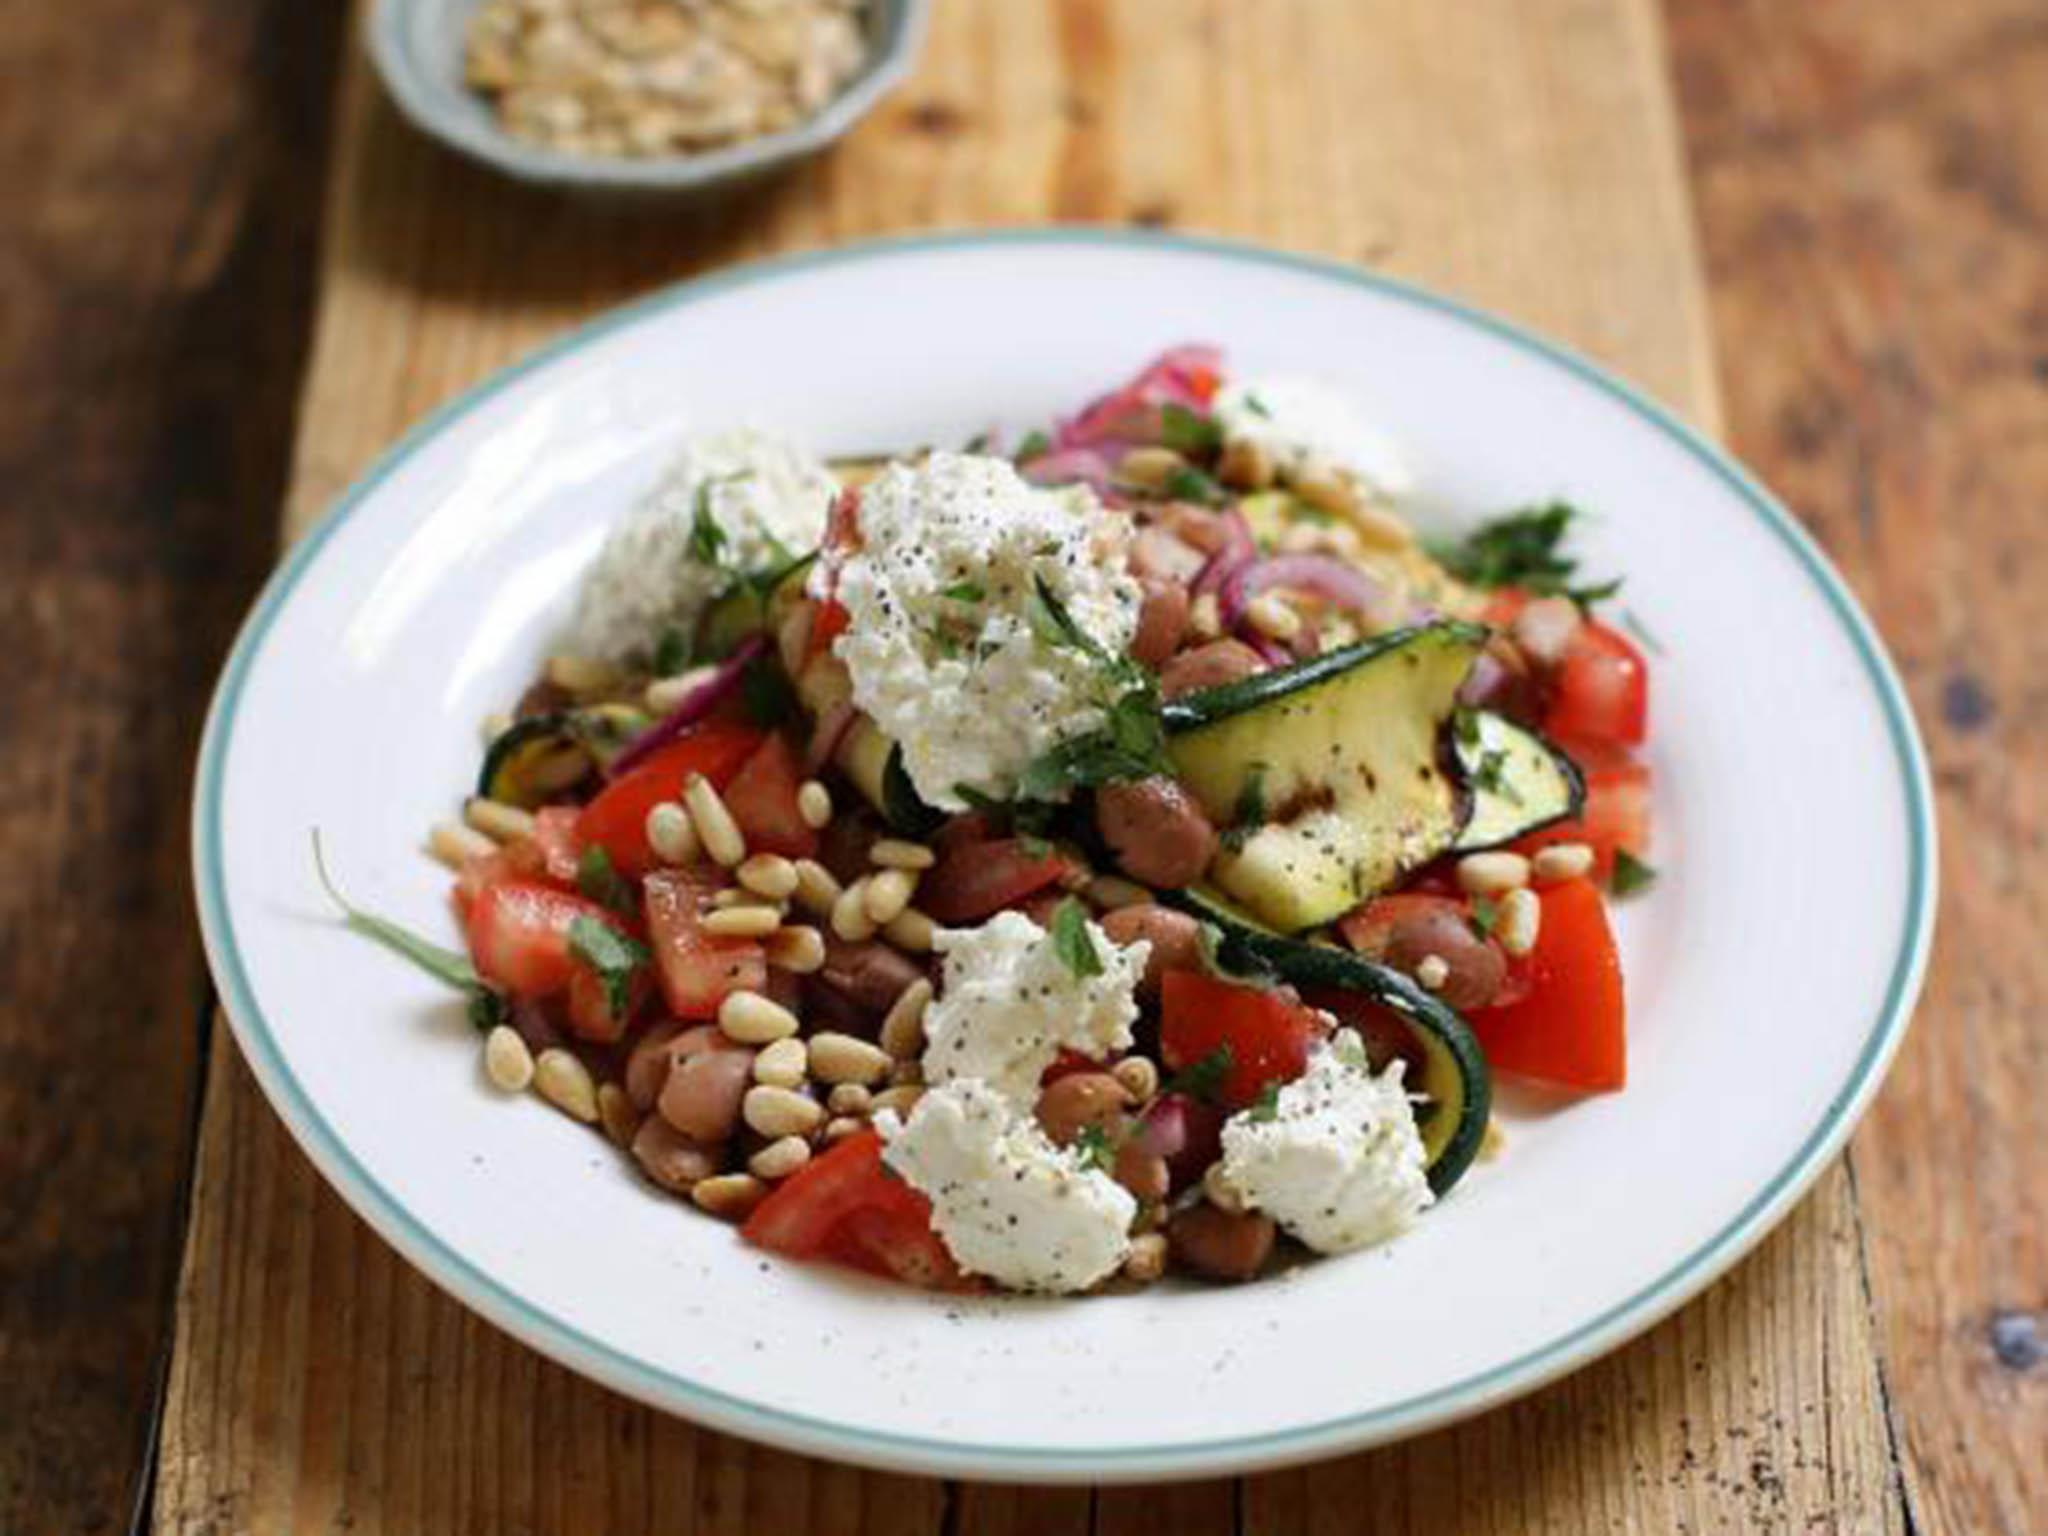 How to make courgette, borlotti bean and ricotta salad 1